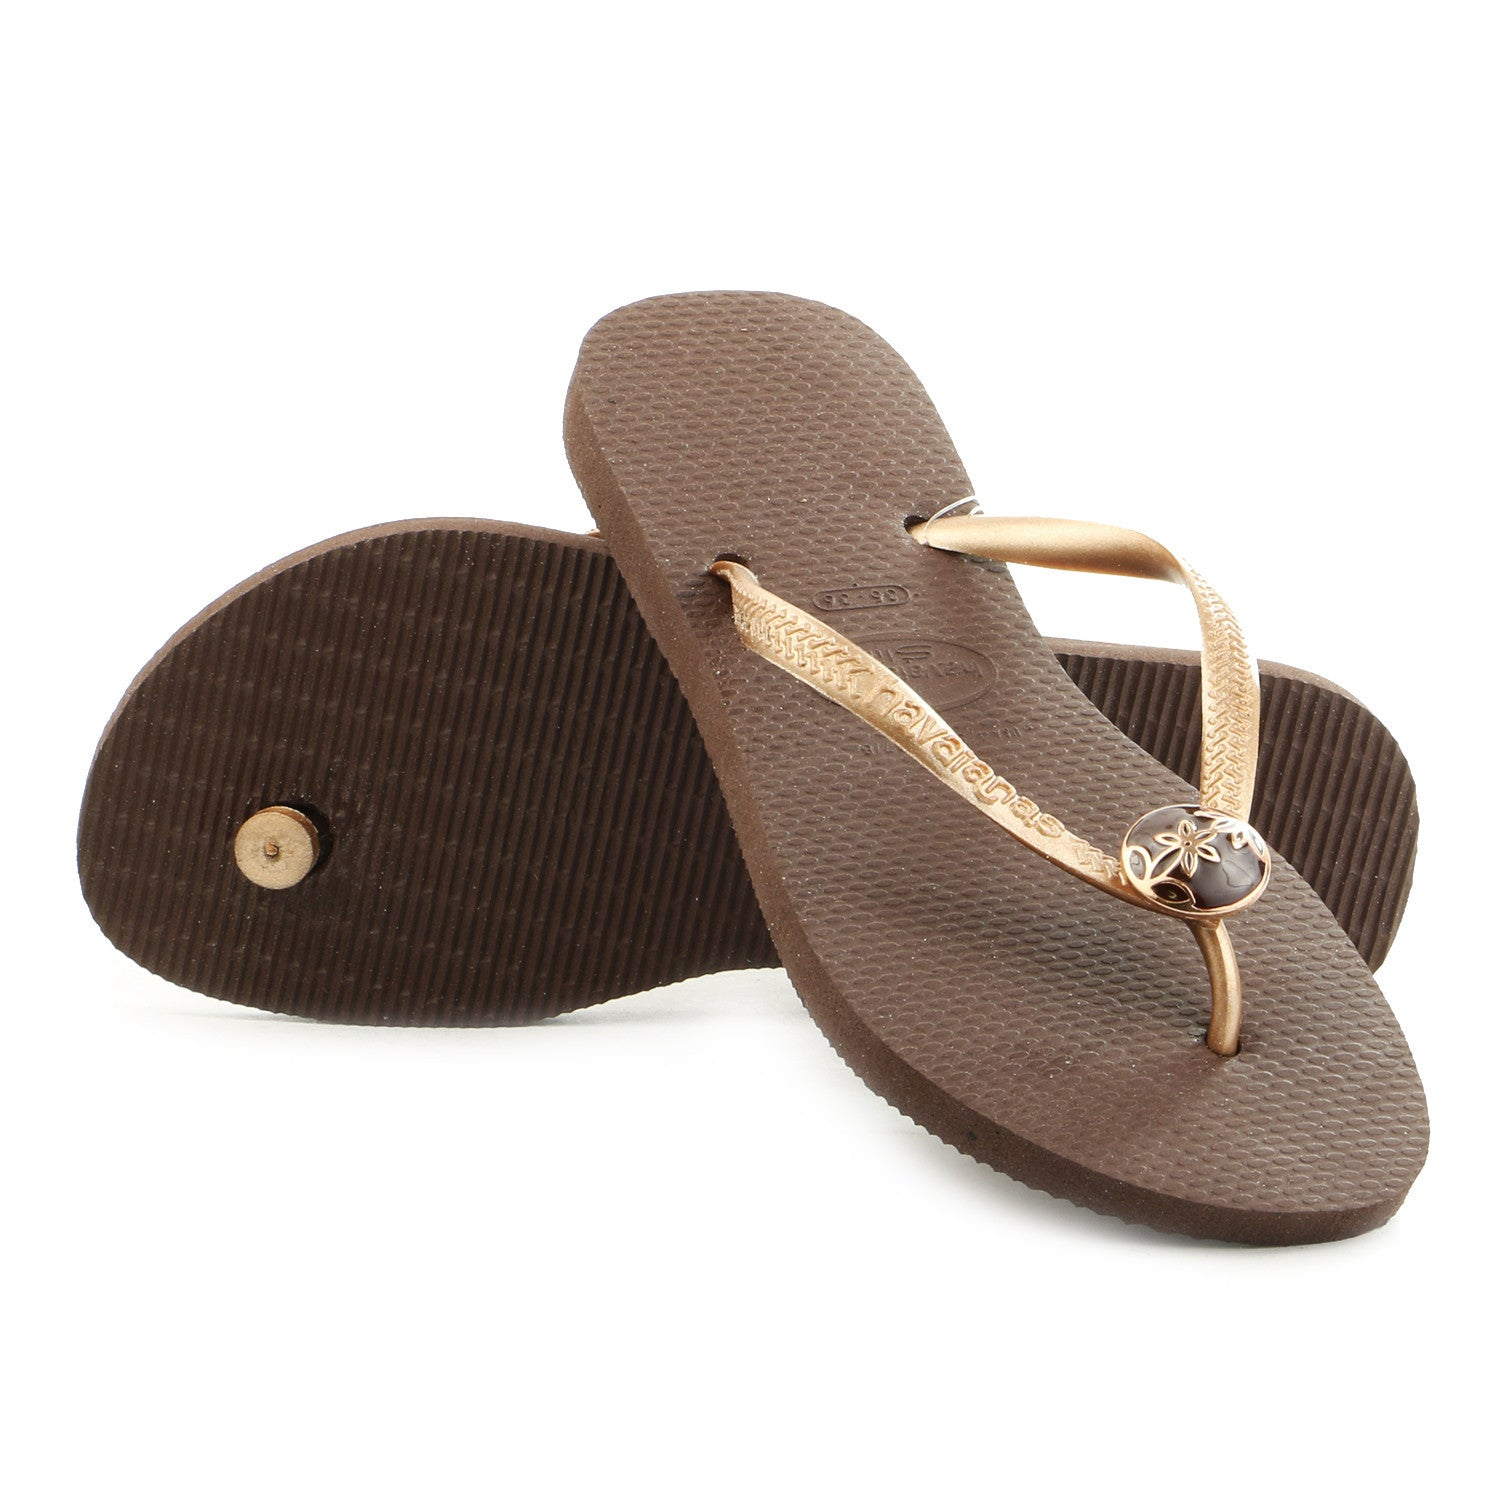 bf7ad9955 Havaianas Slim Flower Thong Flip Flop Sandal - Dark Brown - Womens ...